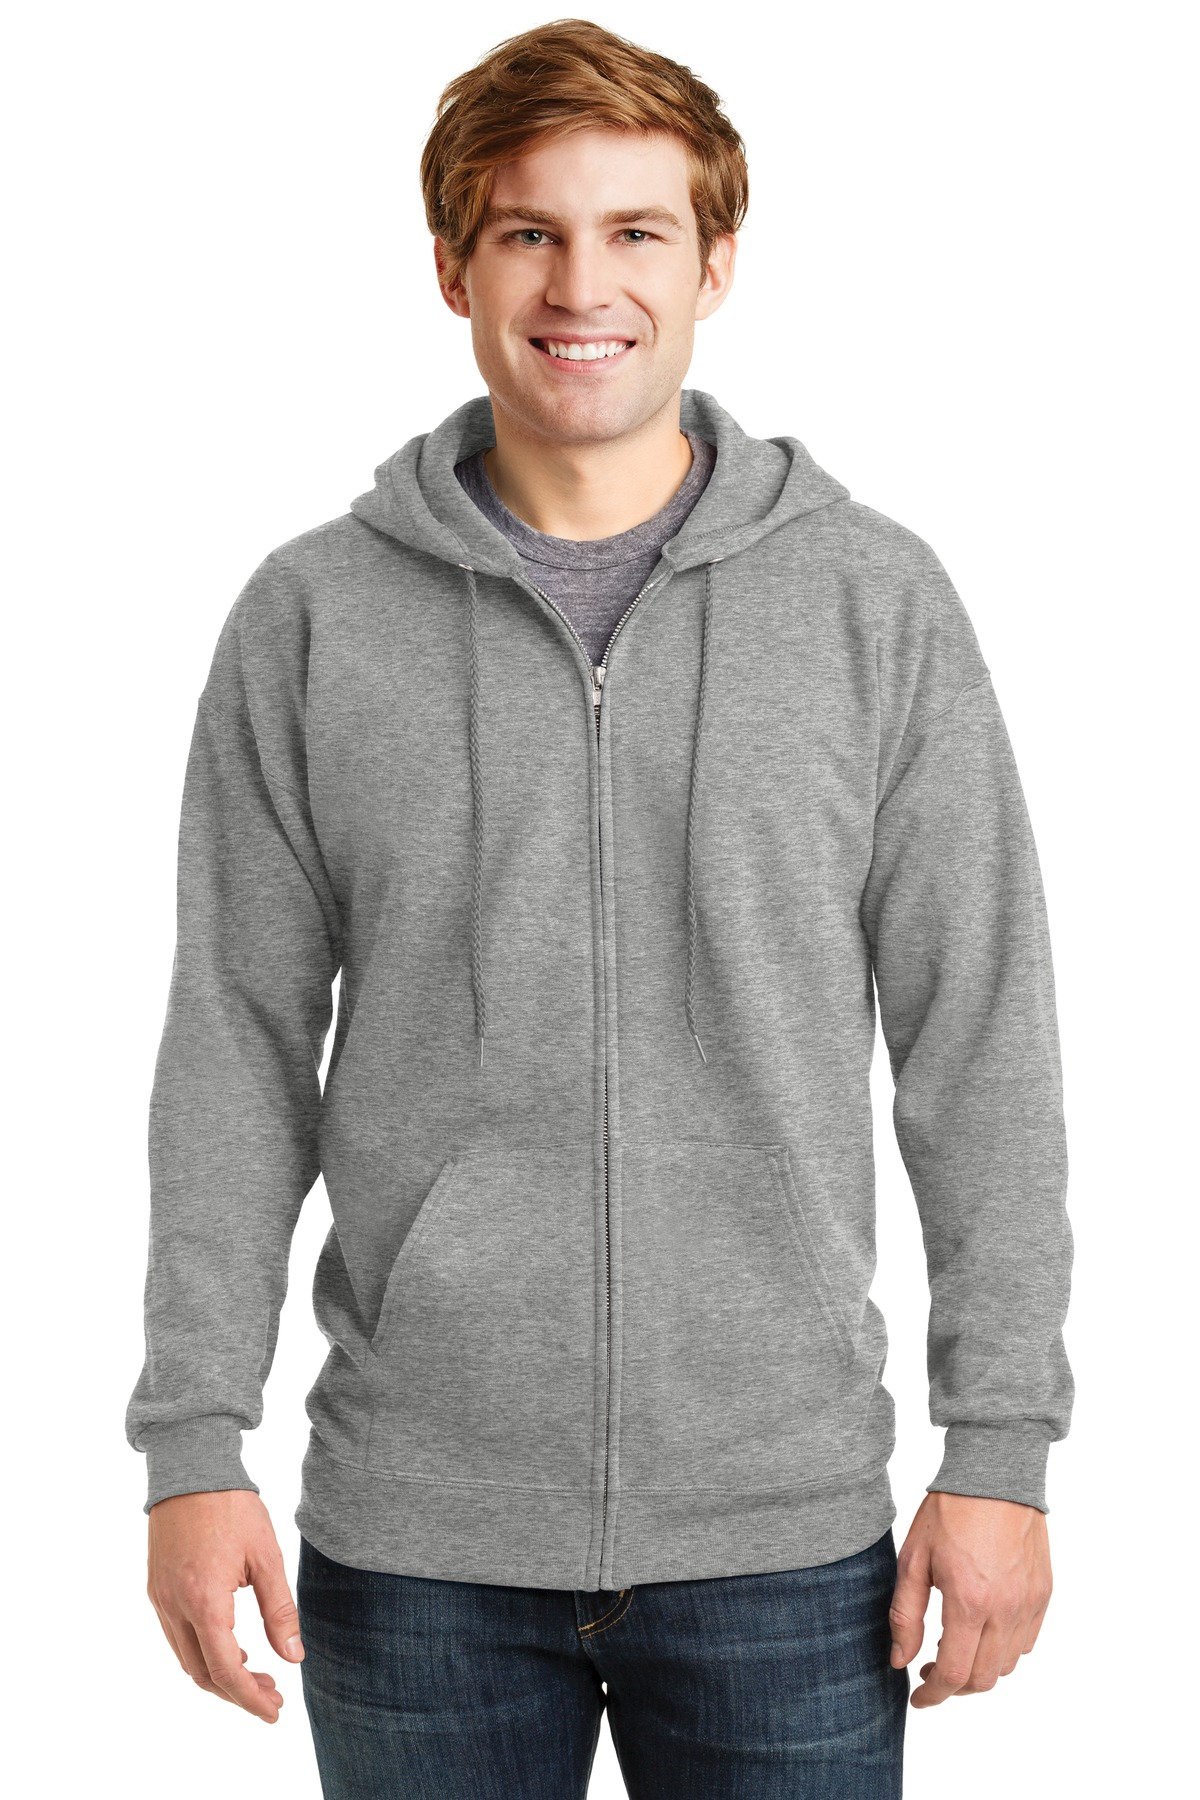 Hanes ®  Ultimate Cotton ®  - Full-Zip Hooded Sweatshirt.  F283 - Light Steel